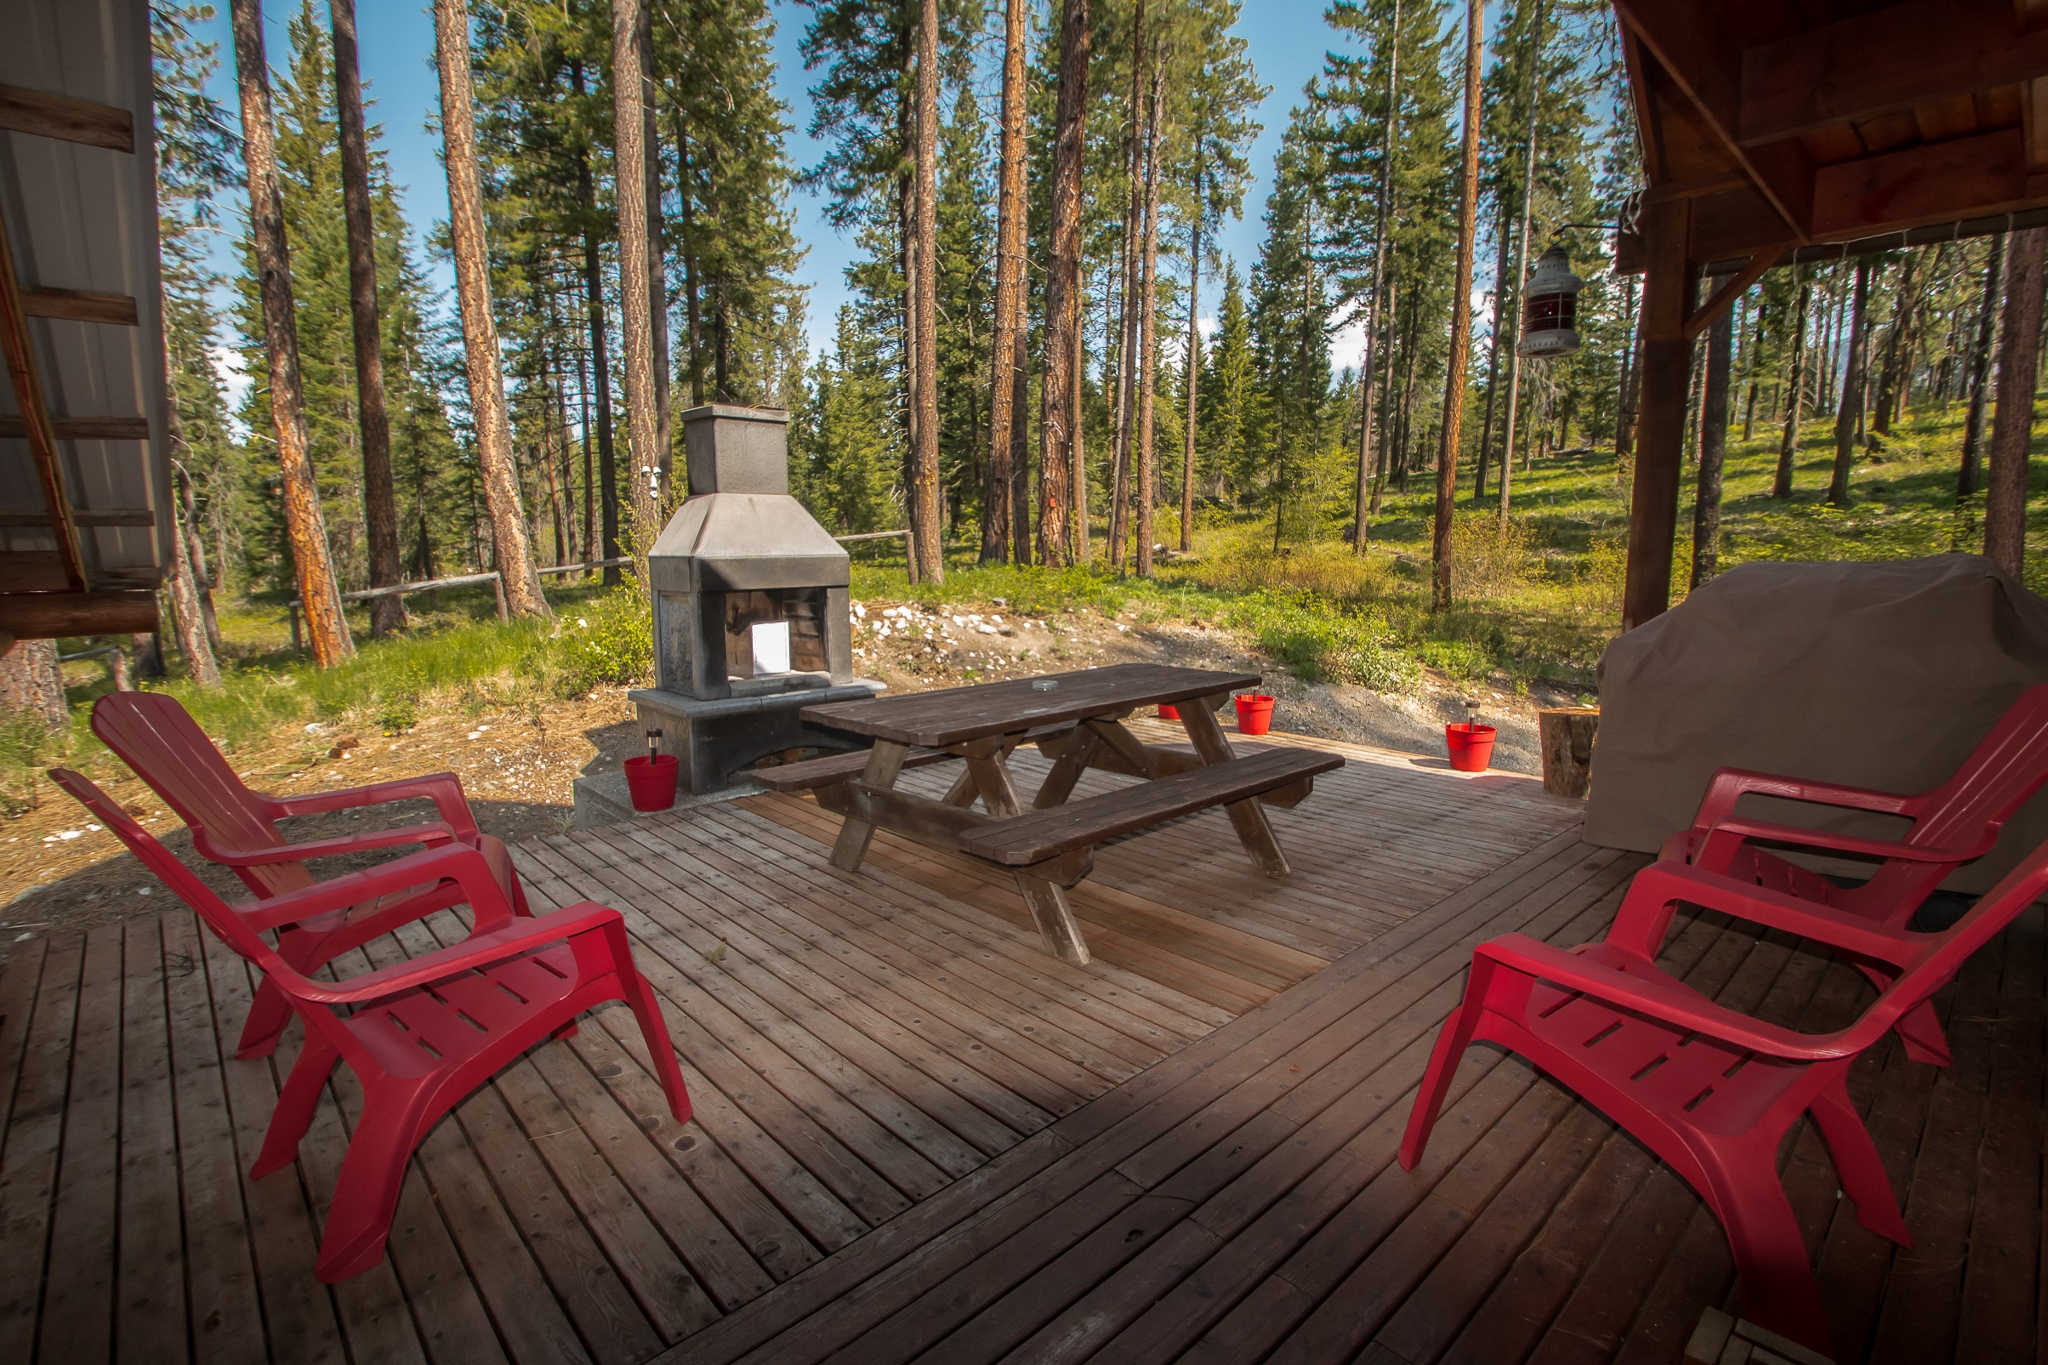 snoqualmie pass latin singles 5 single family homes for sale in snoqualmie pass wa view pictures of homes, review sales history, and use our detailed filters to find the perfect place.